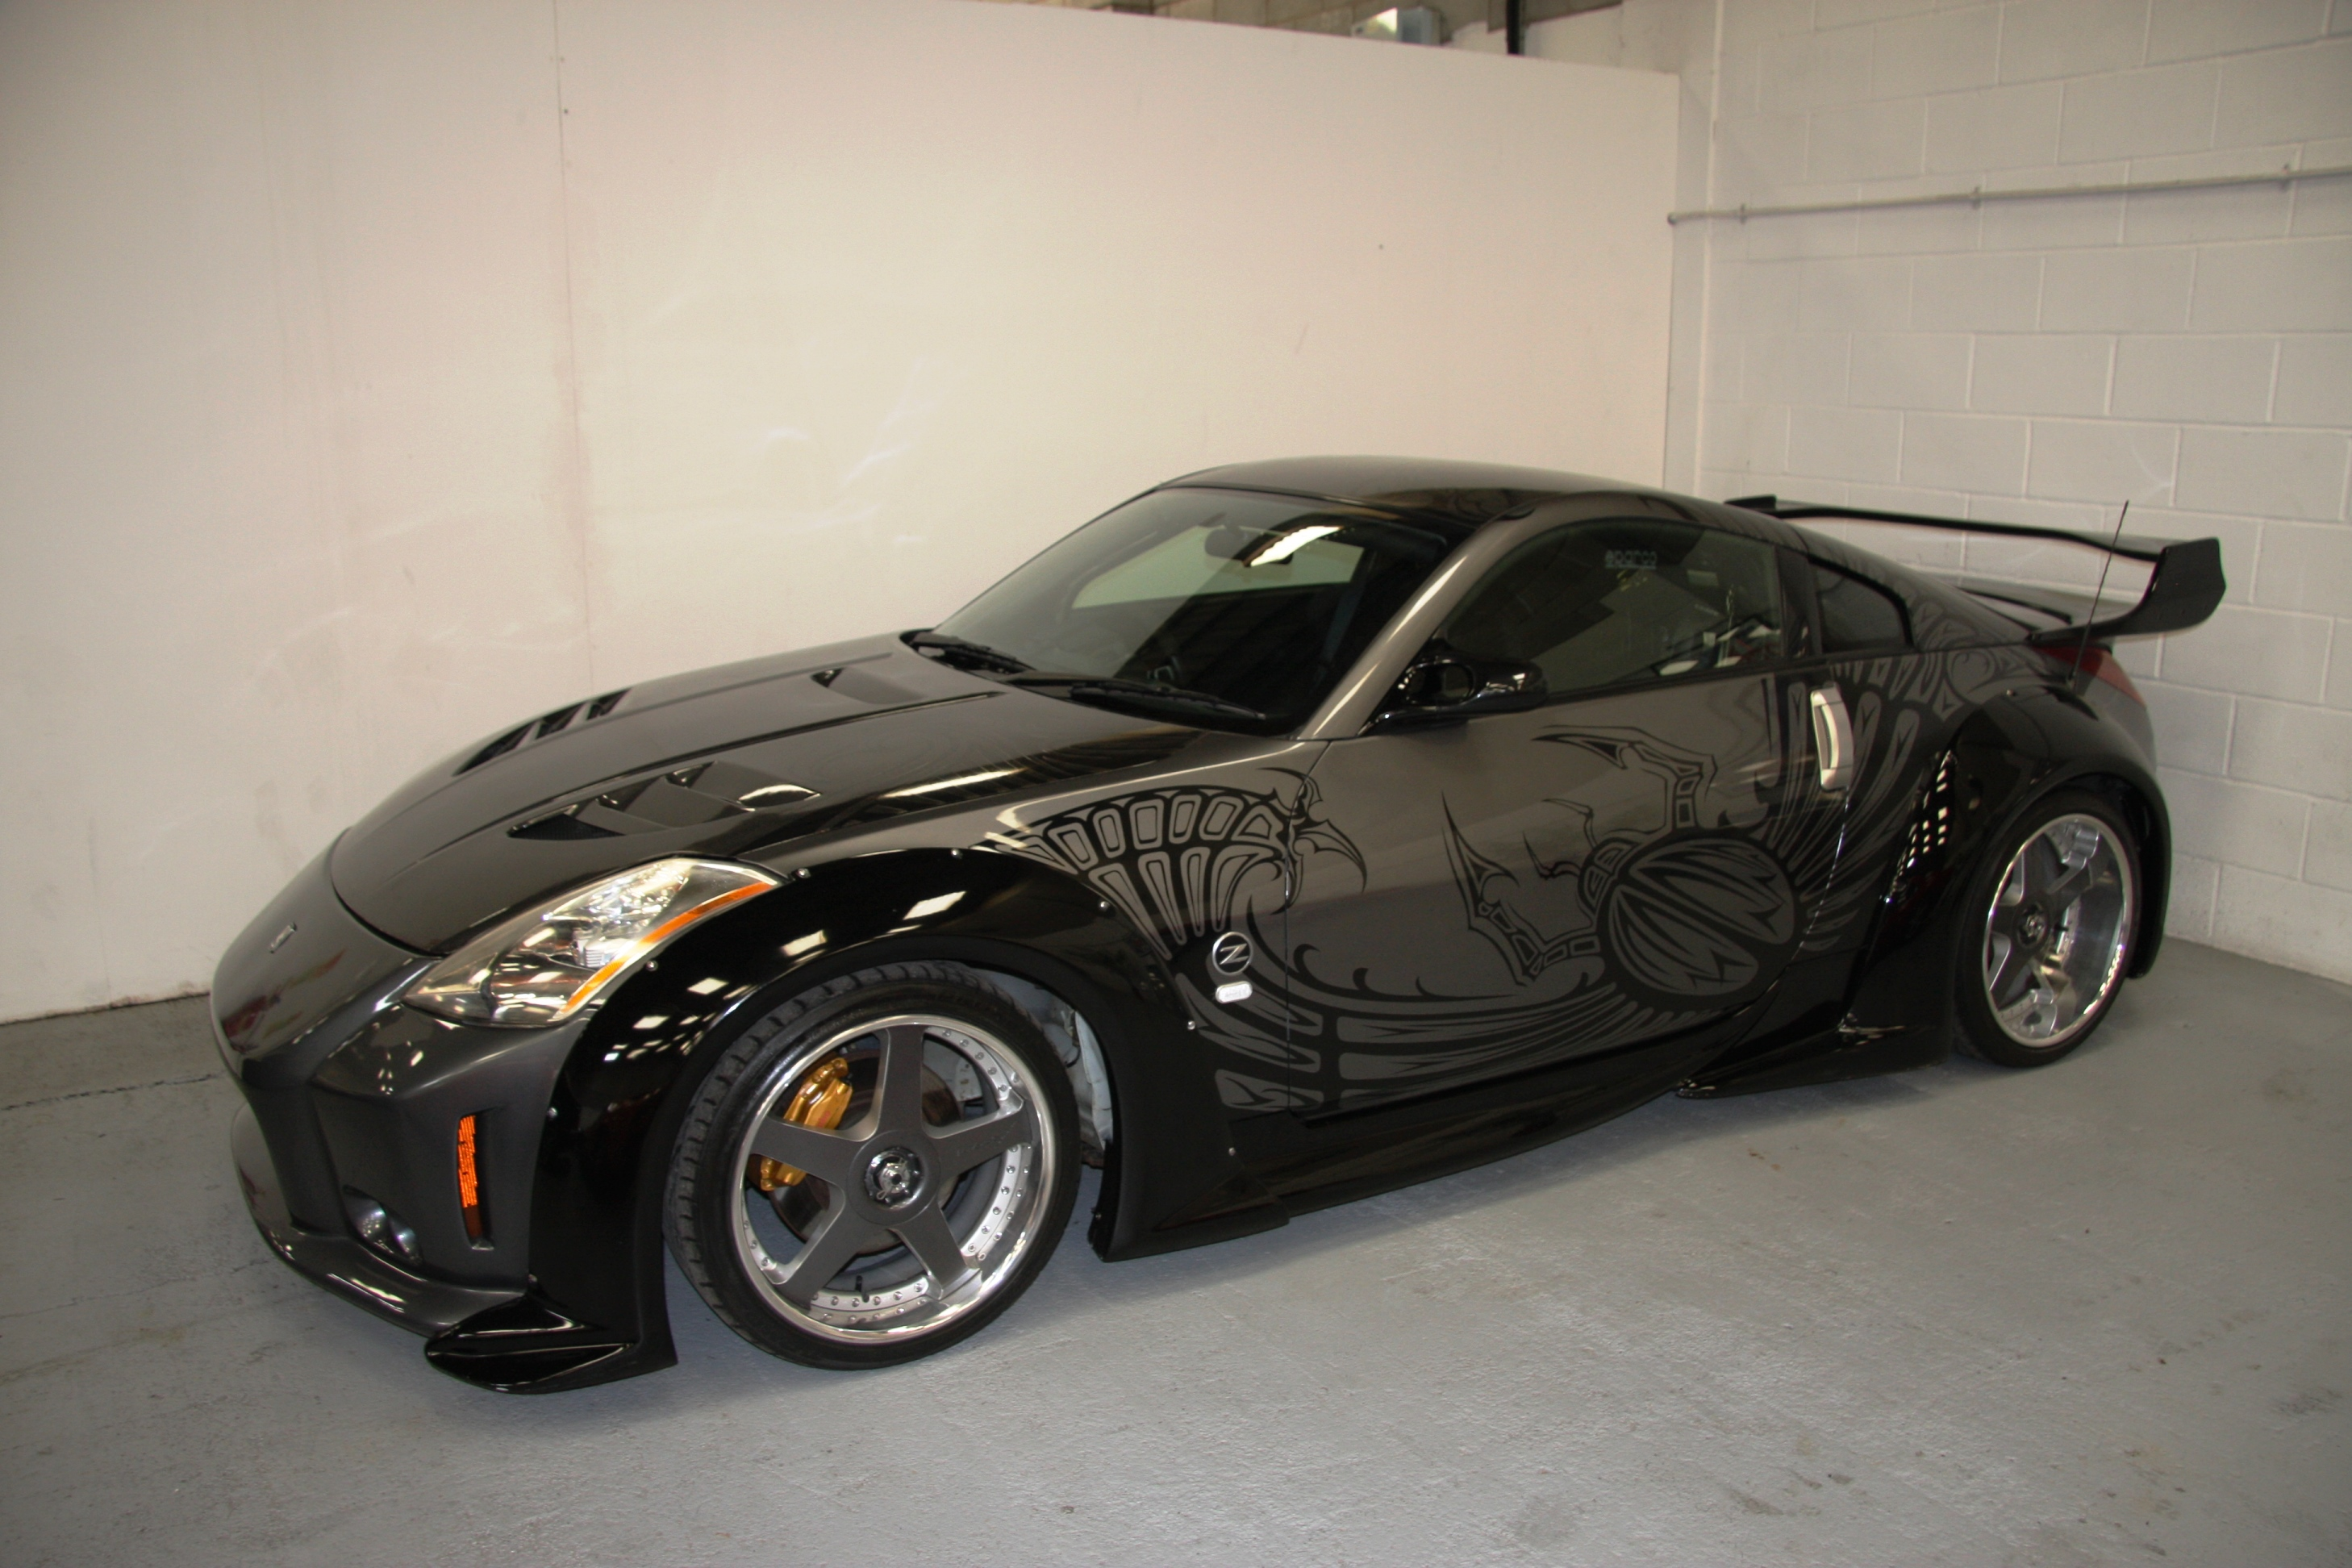 dk 39 s nissan 350z from tokyo drift for sale at 149 995 gtspirit. Black Bedroom Furniture Sets. Home Design Ideas